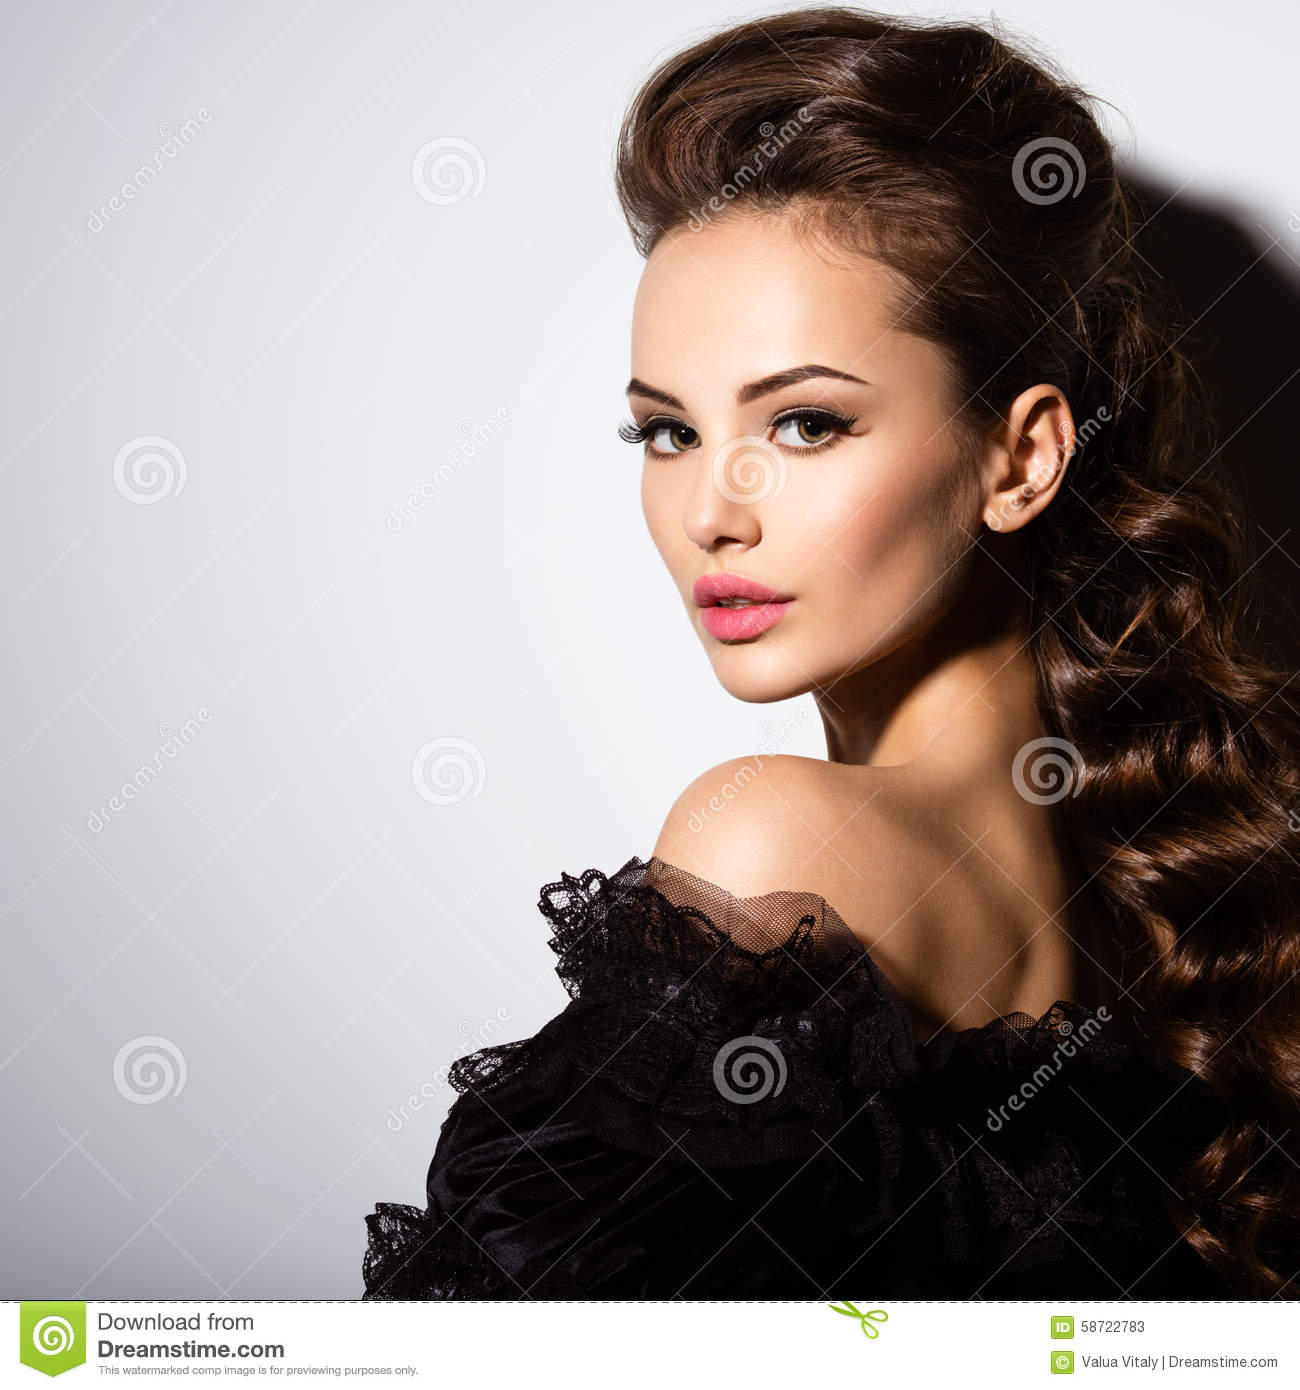 4d0d4f706 Beautiful Face Of An Young Woman In Black Dress Stock Image - Image ...